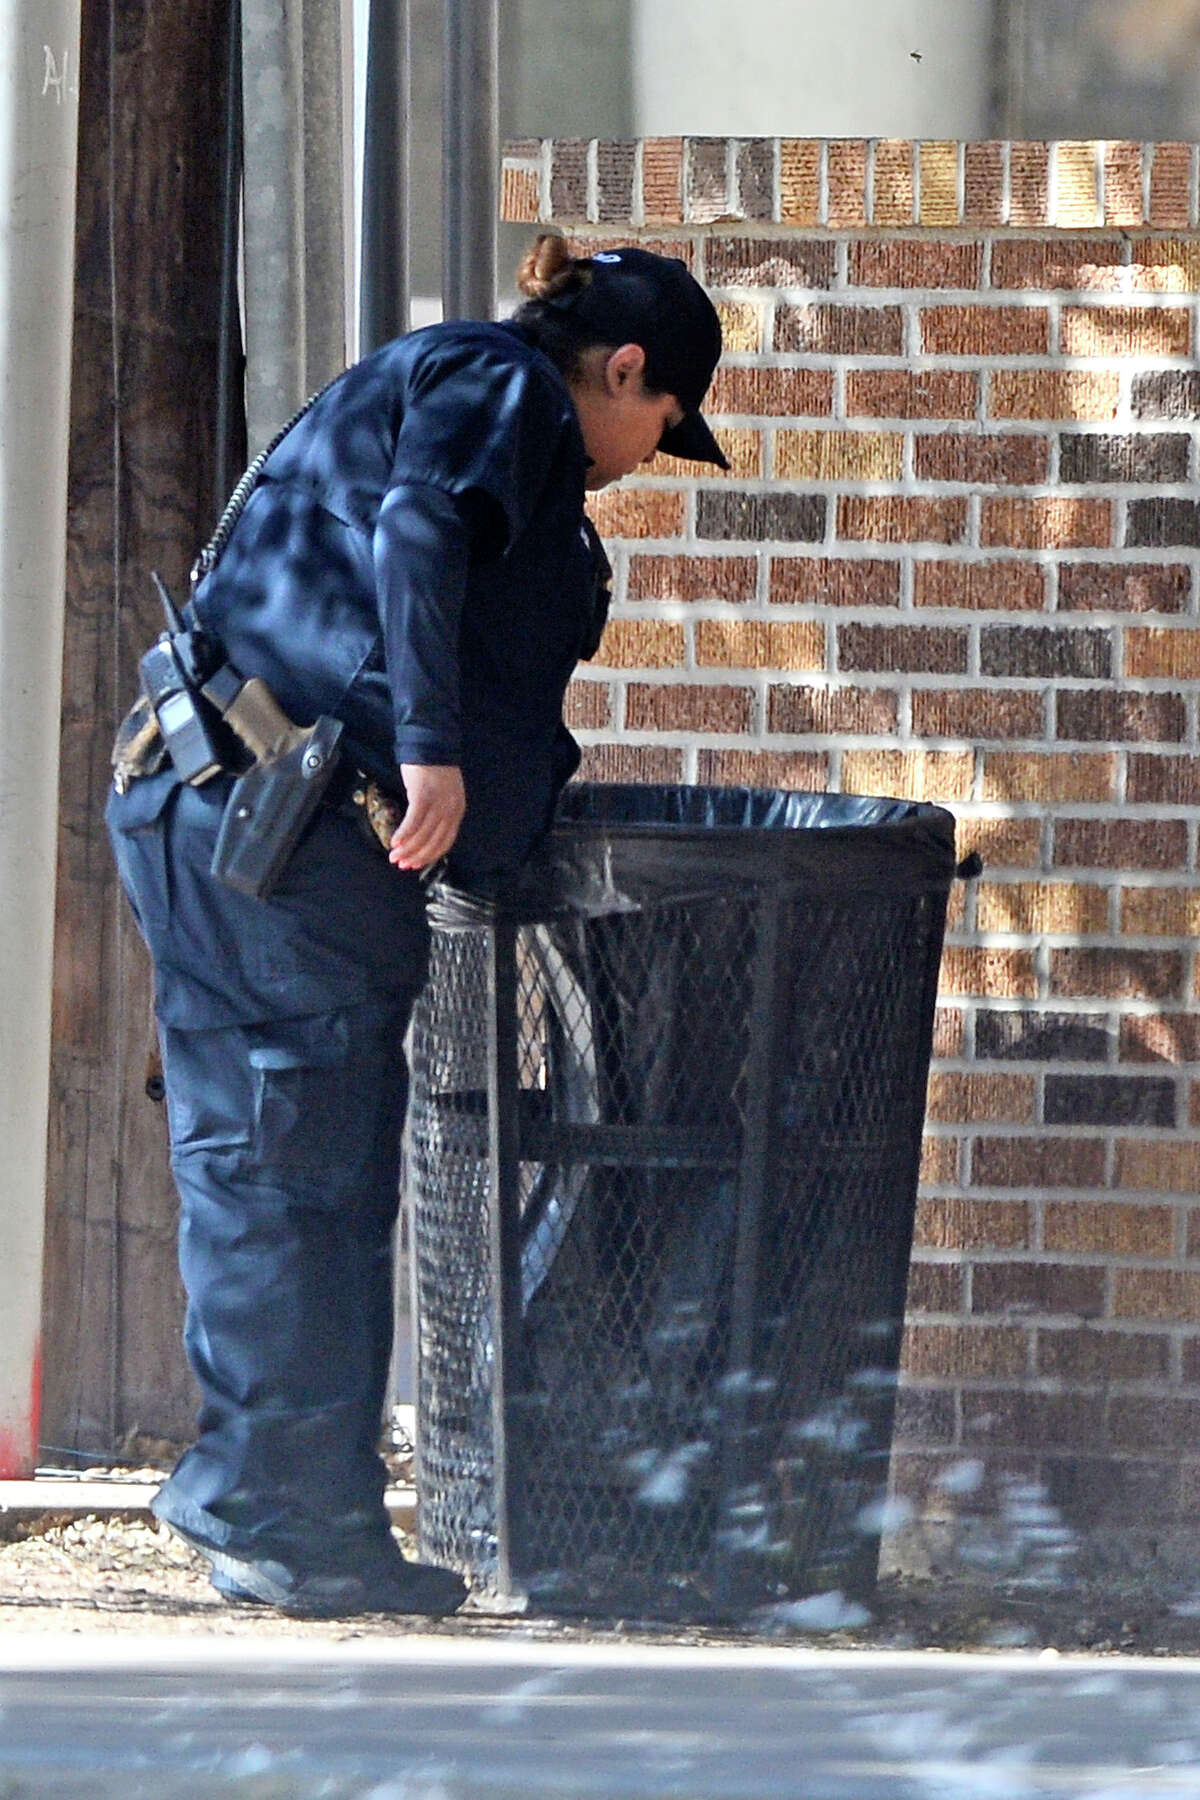 A MISD Police officer looks in a trash can during a lockdown situation on the Midland High campus that was prompted by the reported presence of a weapon at the school, Feb. 13, 2018. James Durbin/Reporter-Telegram